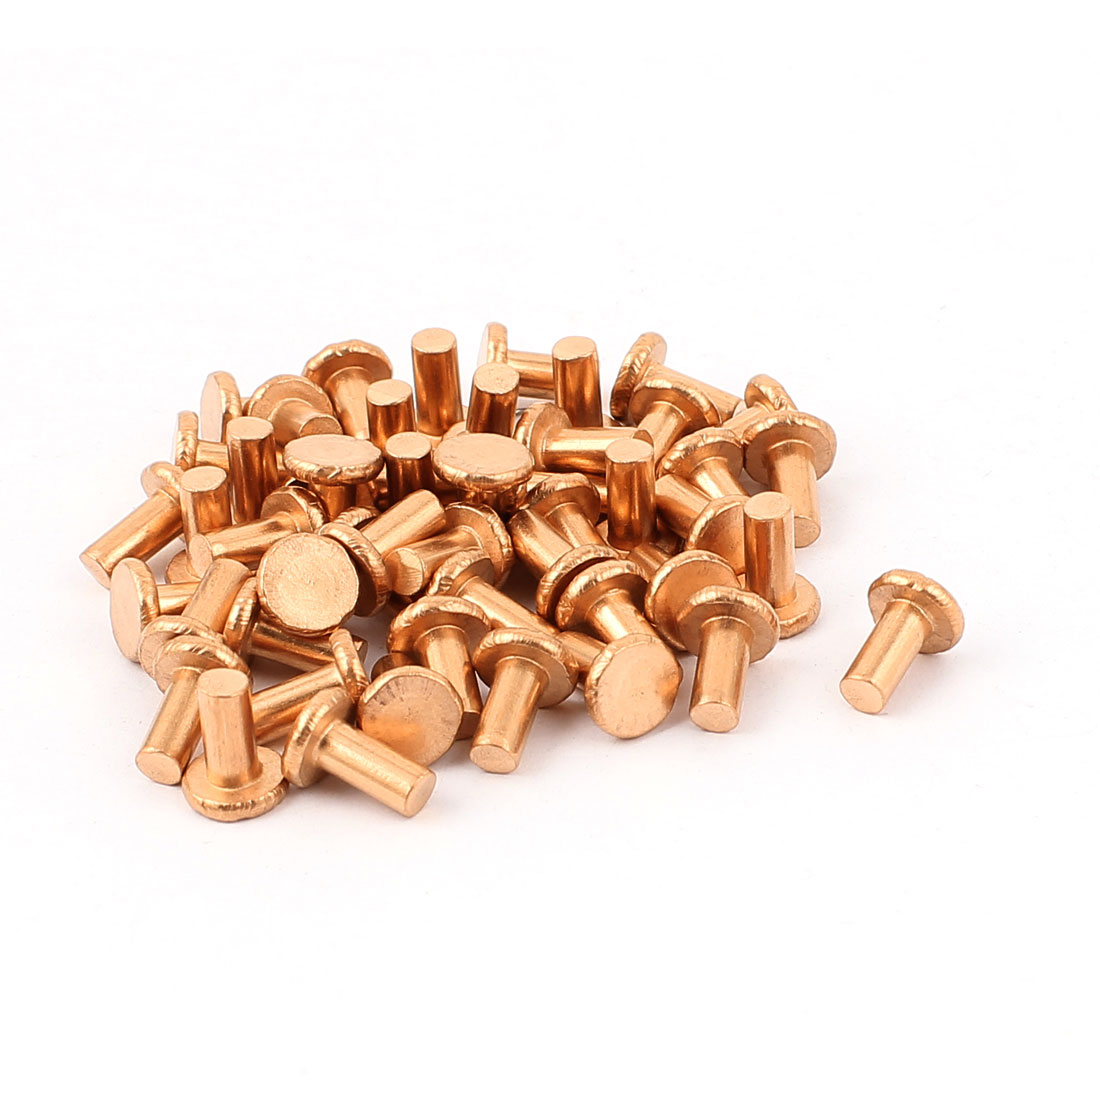 "50 Pcs 5/32"" Diameter 5/16"" Long Shank Flat Head Copper Solid Rivets Fasteners"